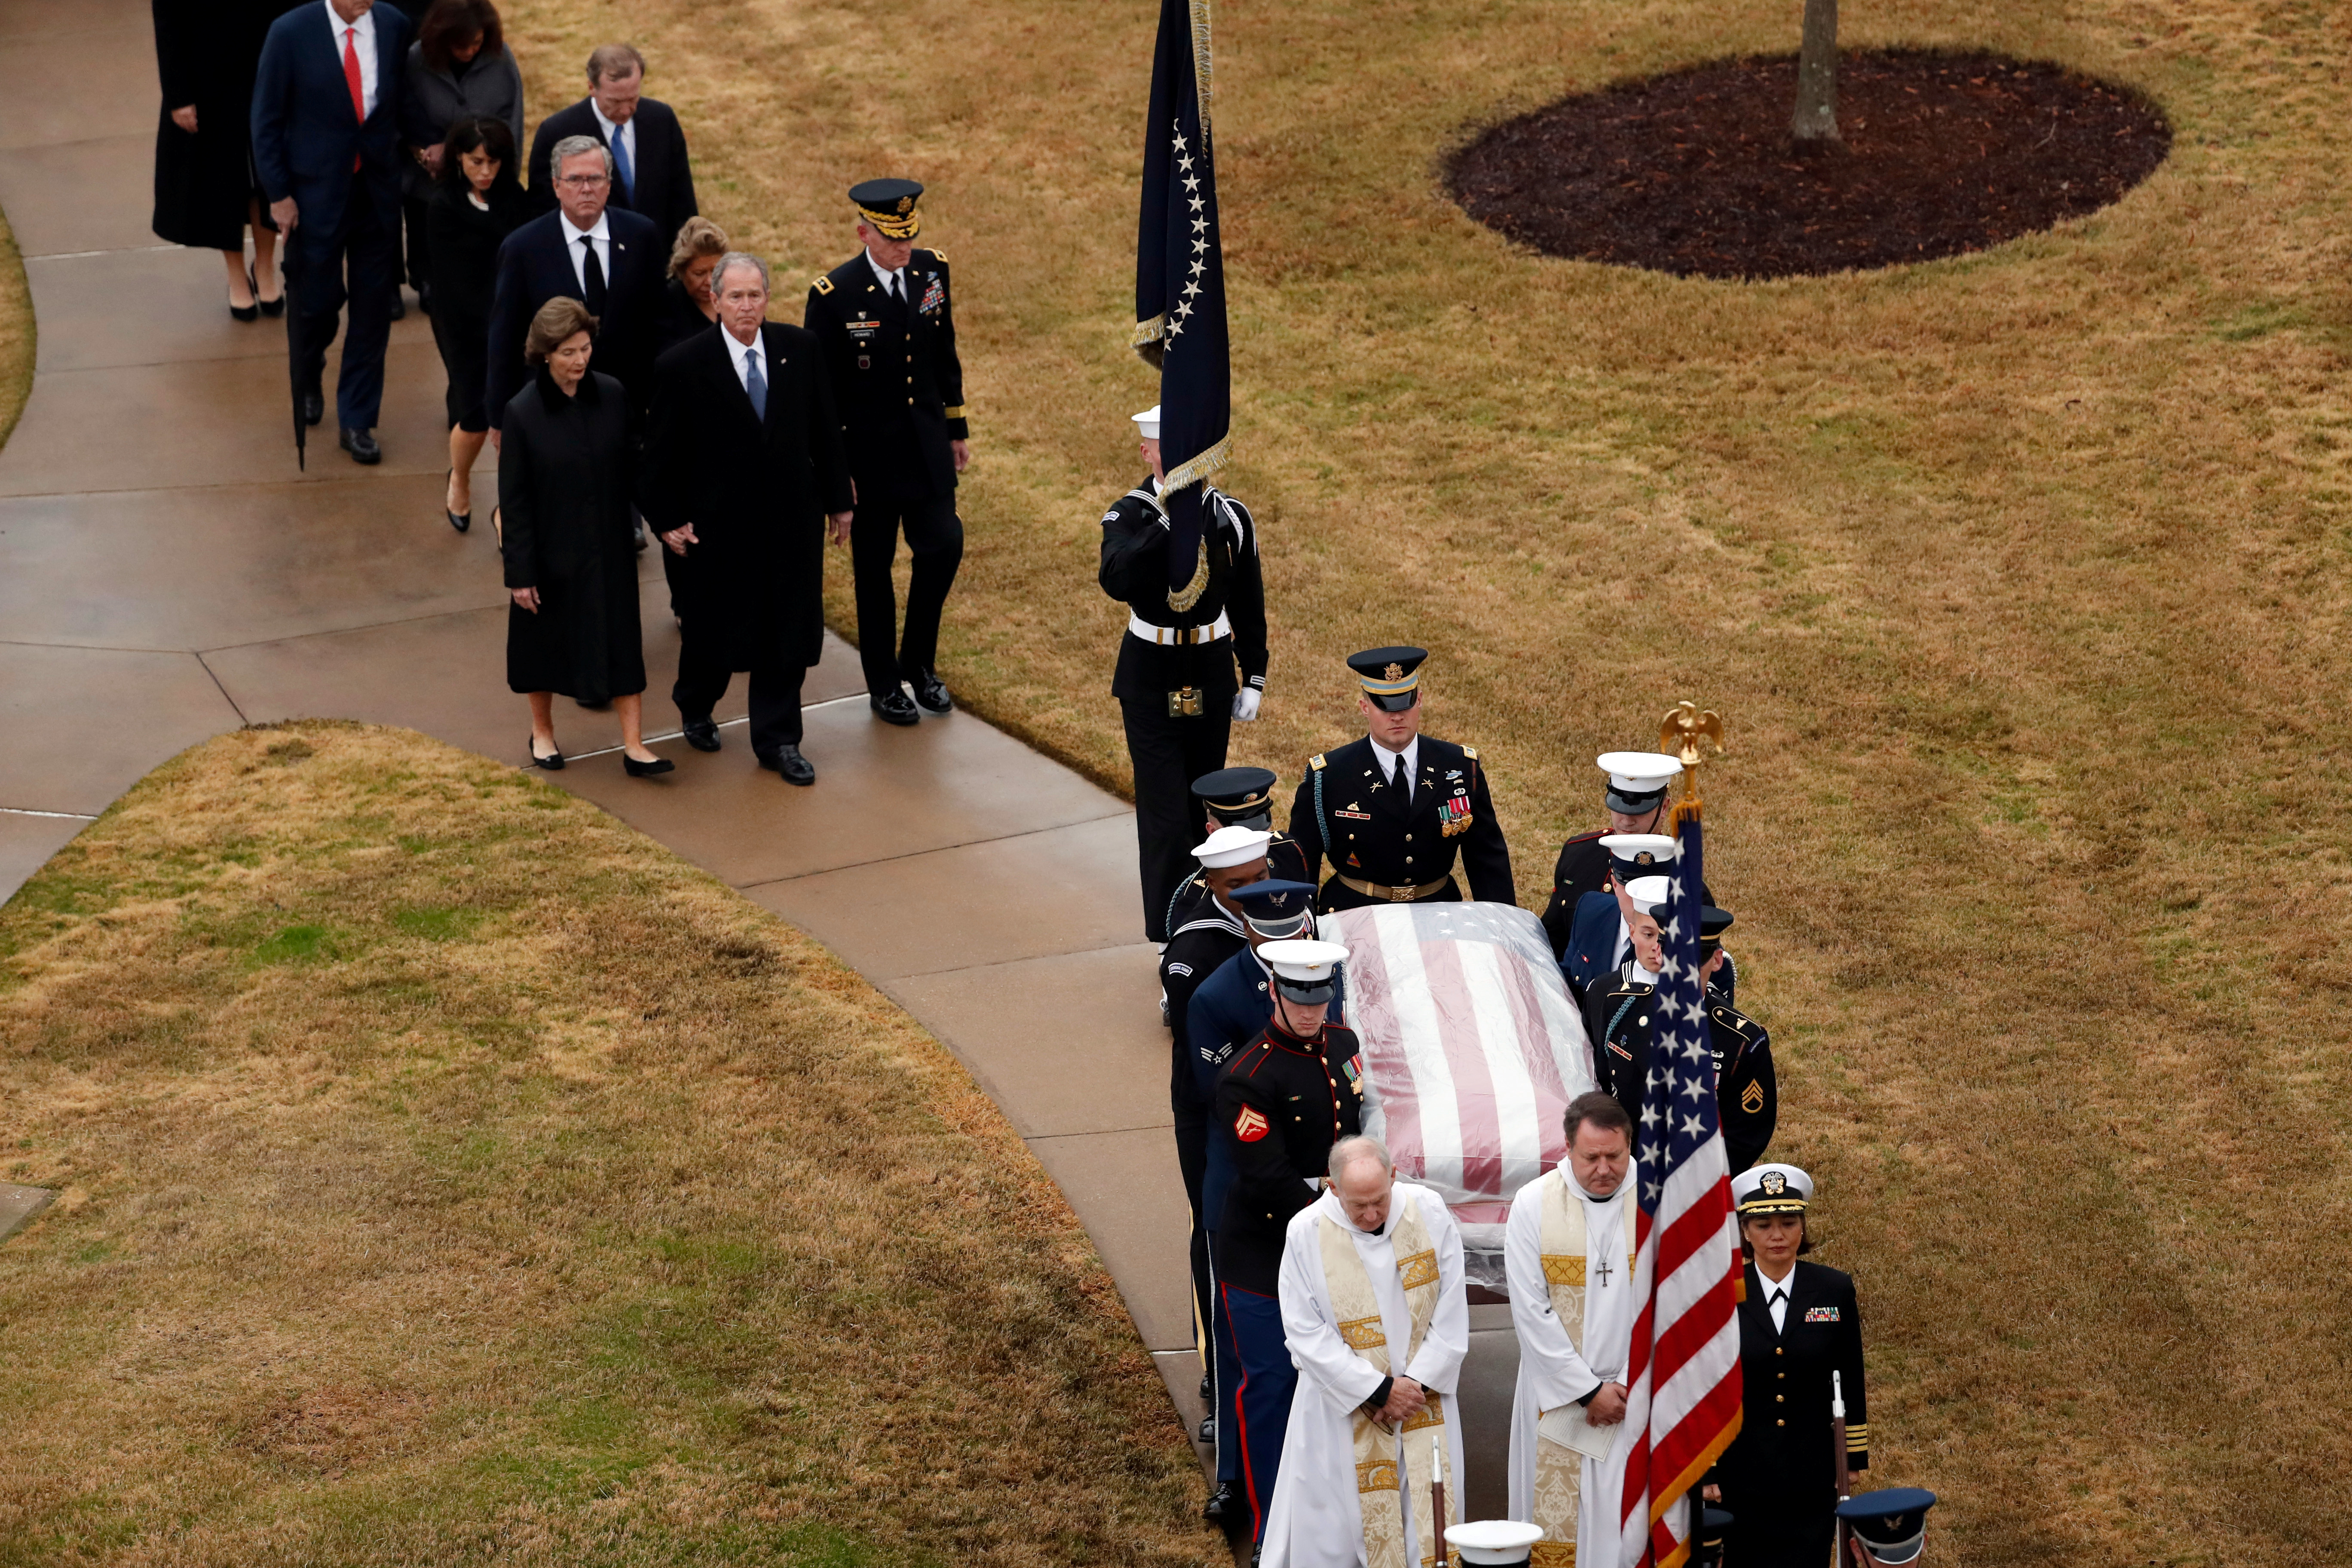 The flag-draped casket of former President George H.W. Bush is carried by a joint services military honor guard followed by family members at the George H.W. Bush Presidential Library and Museum